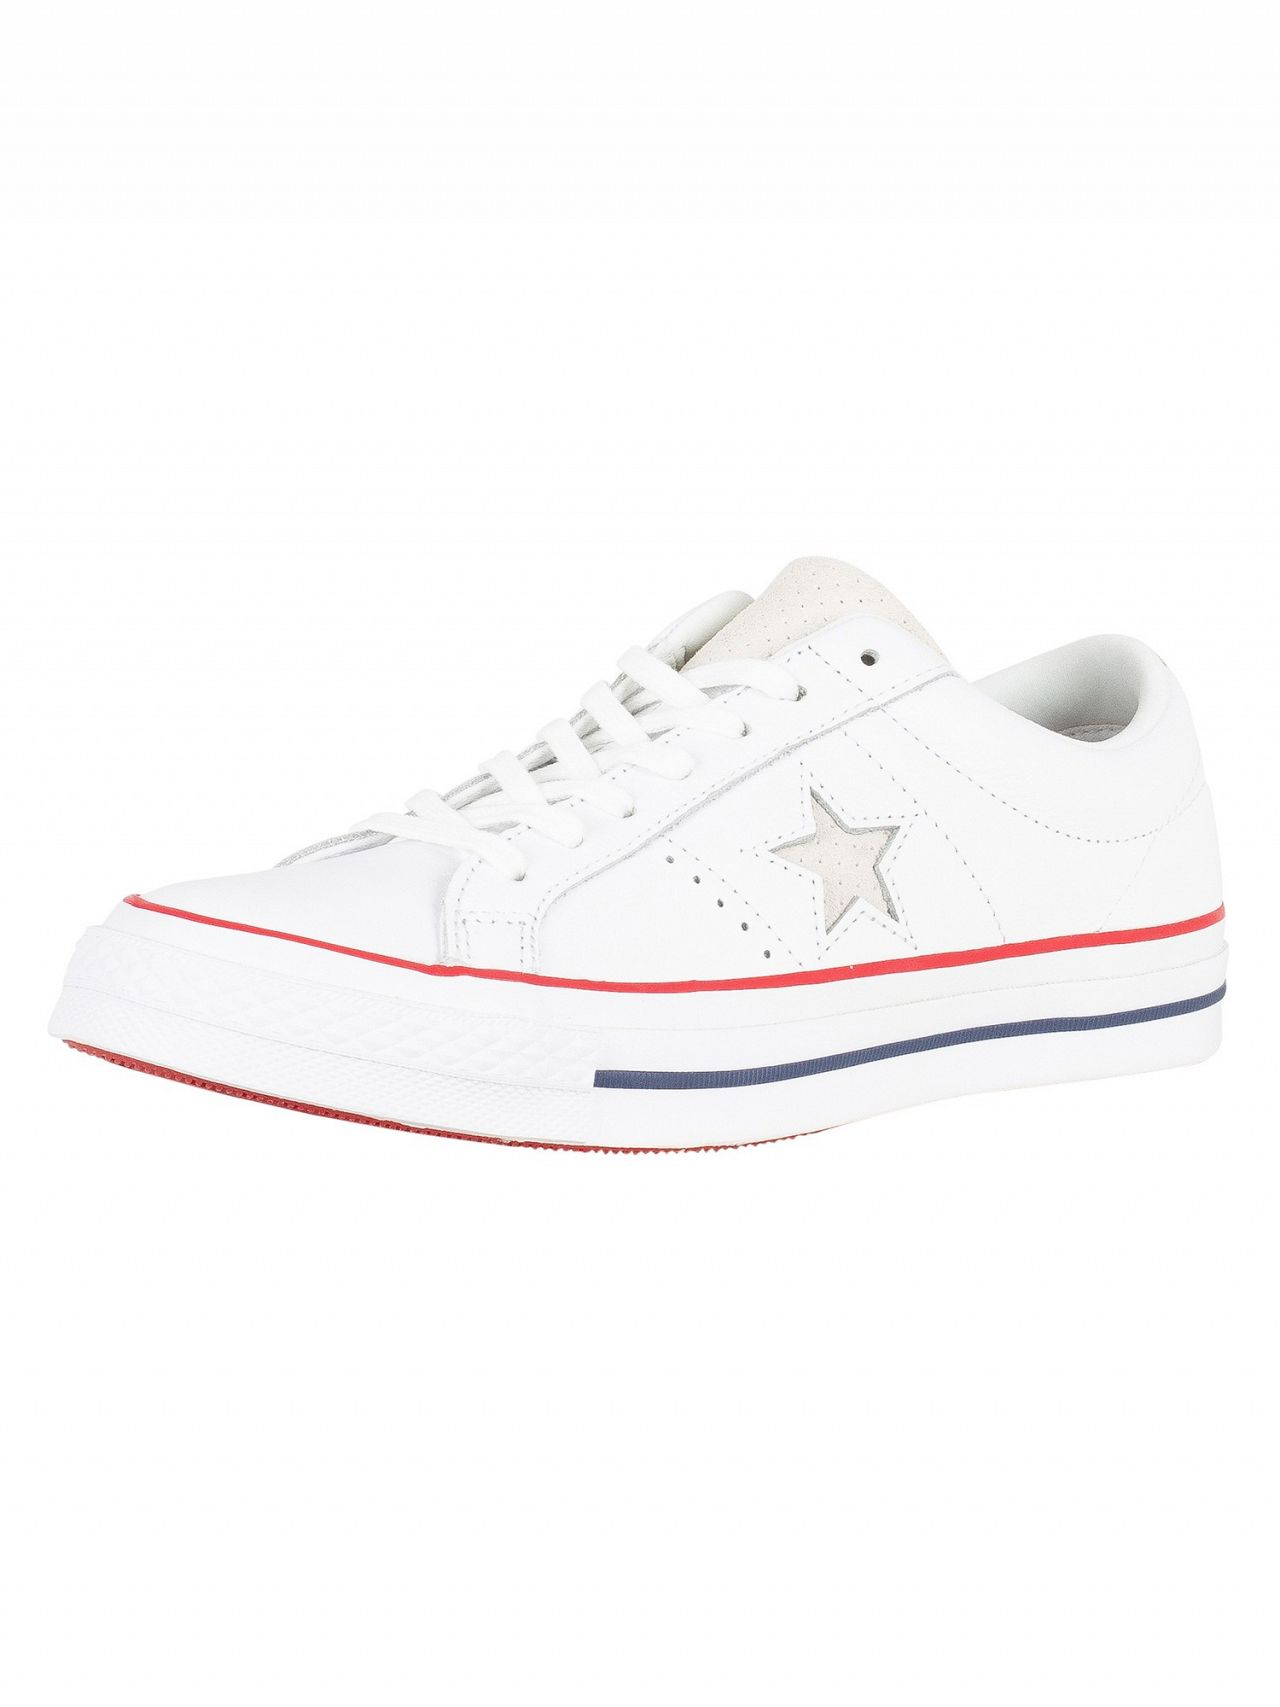 check out 72a77 b5d25 Converse White Gym Red White One Star Ox Leather Trainers